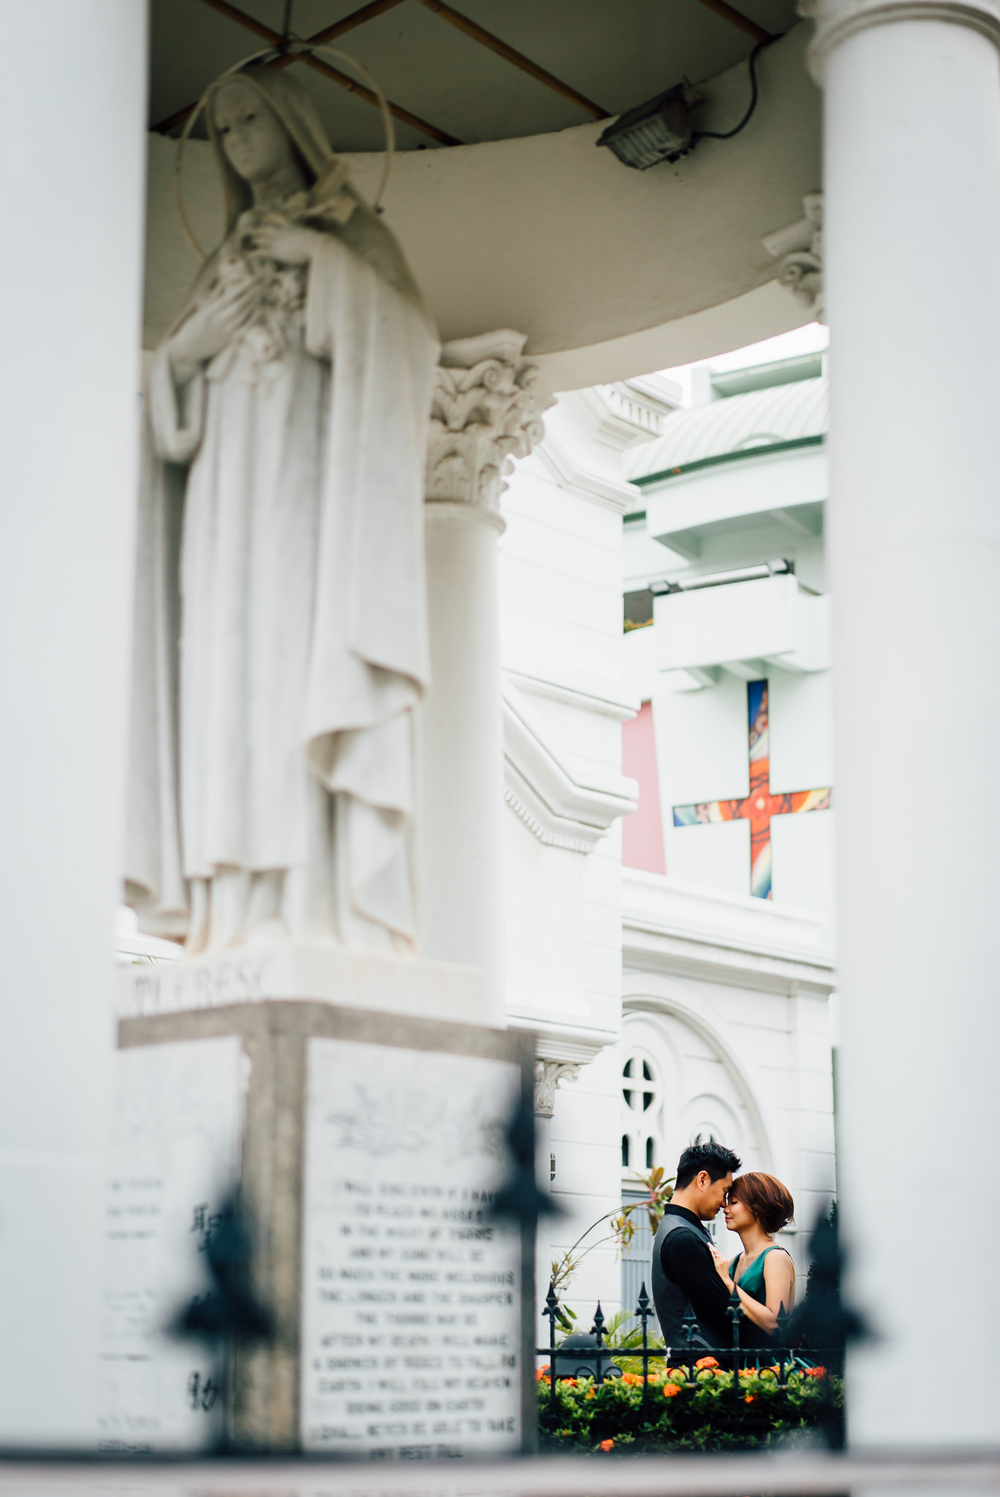 Singapore Wedding Photographer Serene & Vincent 1 degree 15 canterbury hill tuas church of saint terest pre wedding chris chang photography (24 of 31).JPG